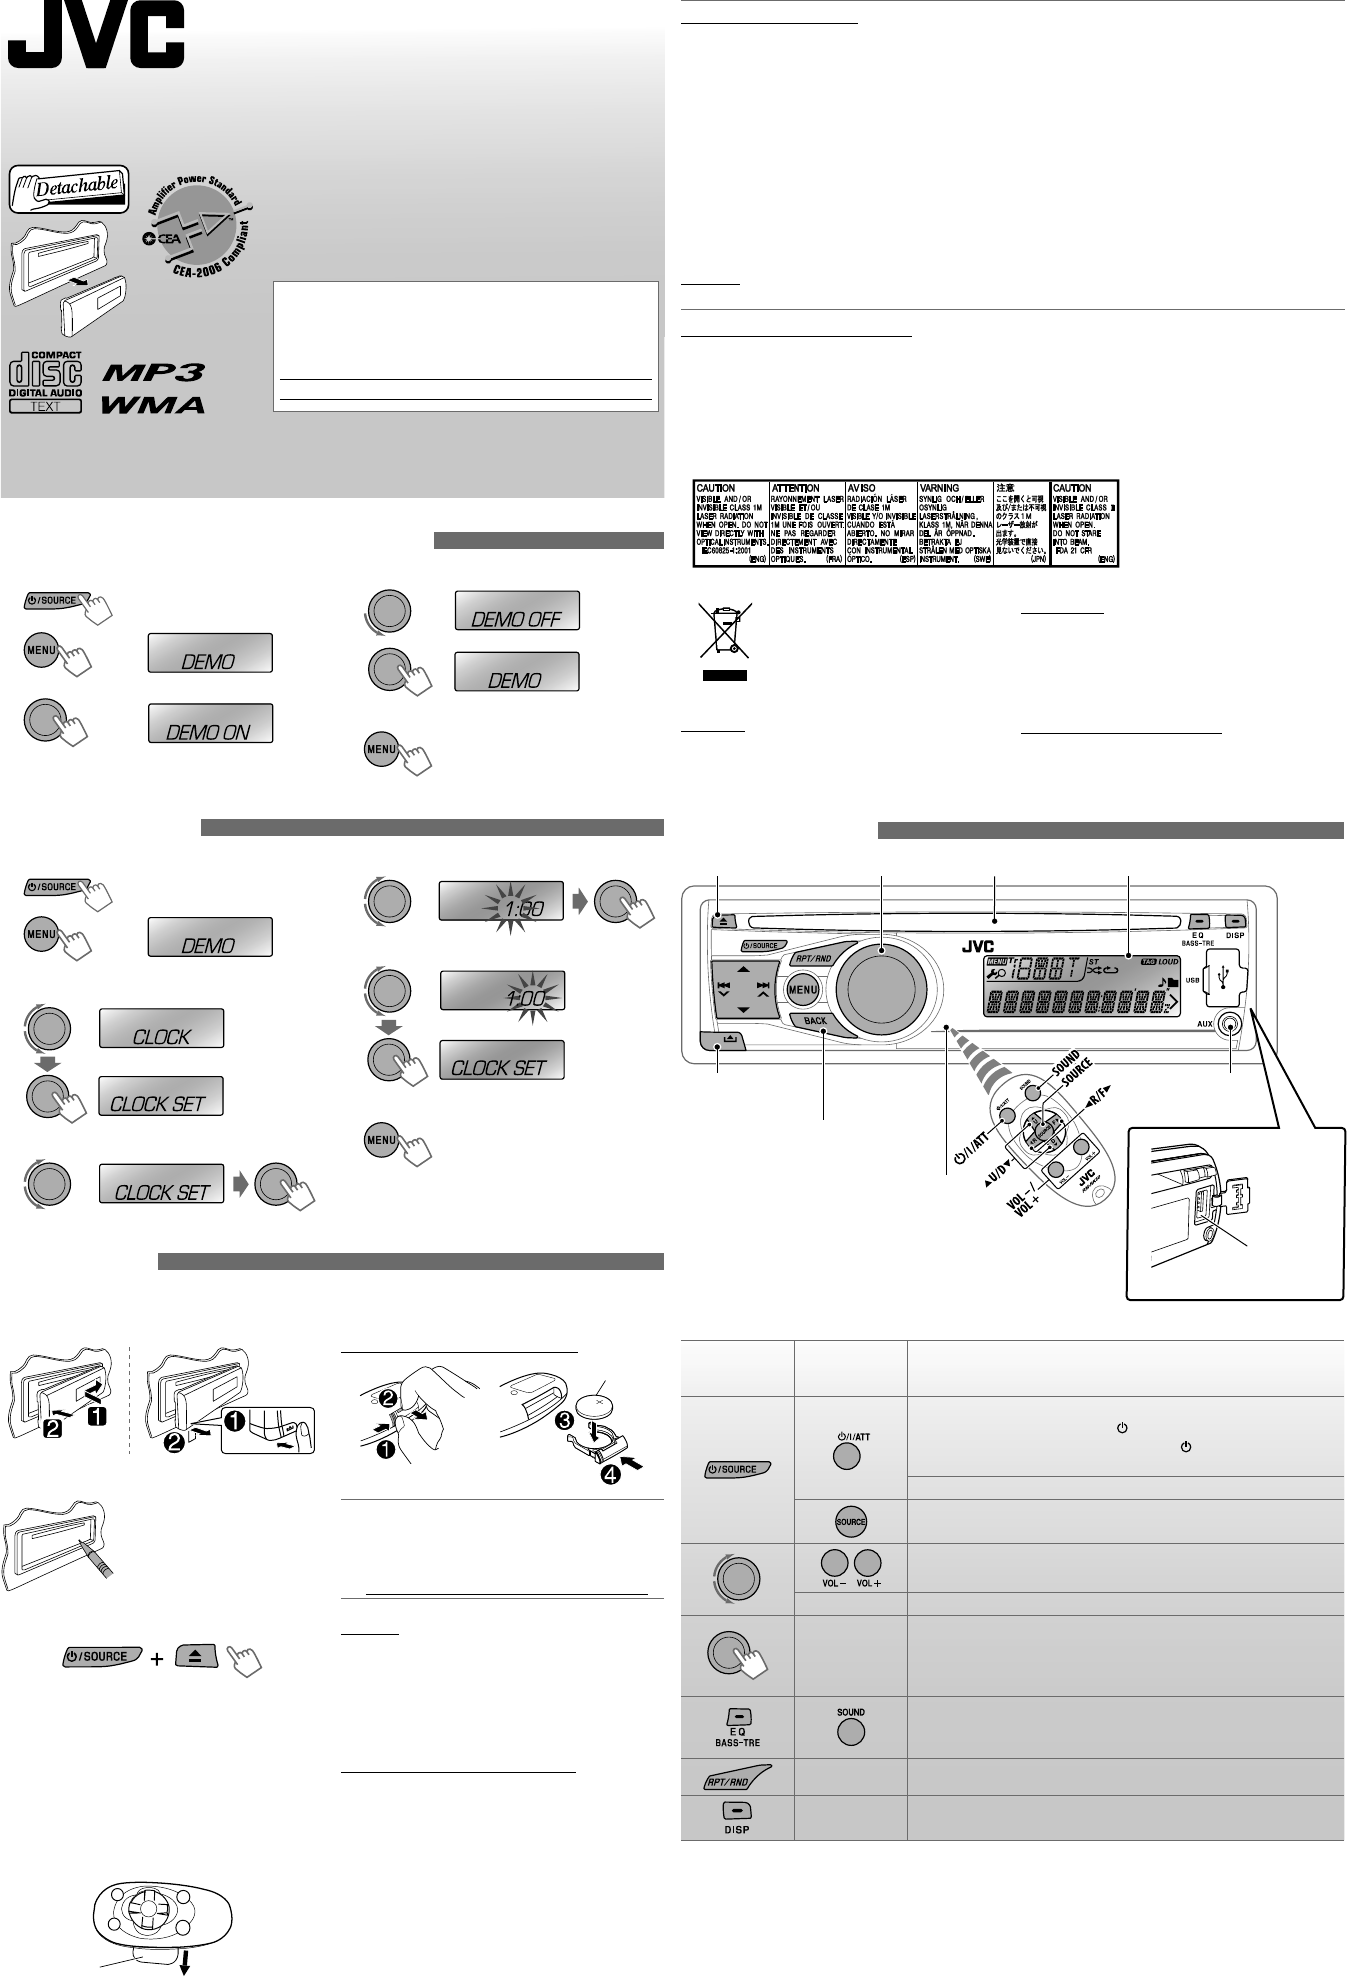 Jvc car stereo system kd s27 user guide manualsonline 1 en sciox Image collections